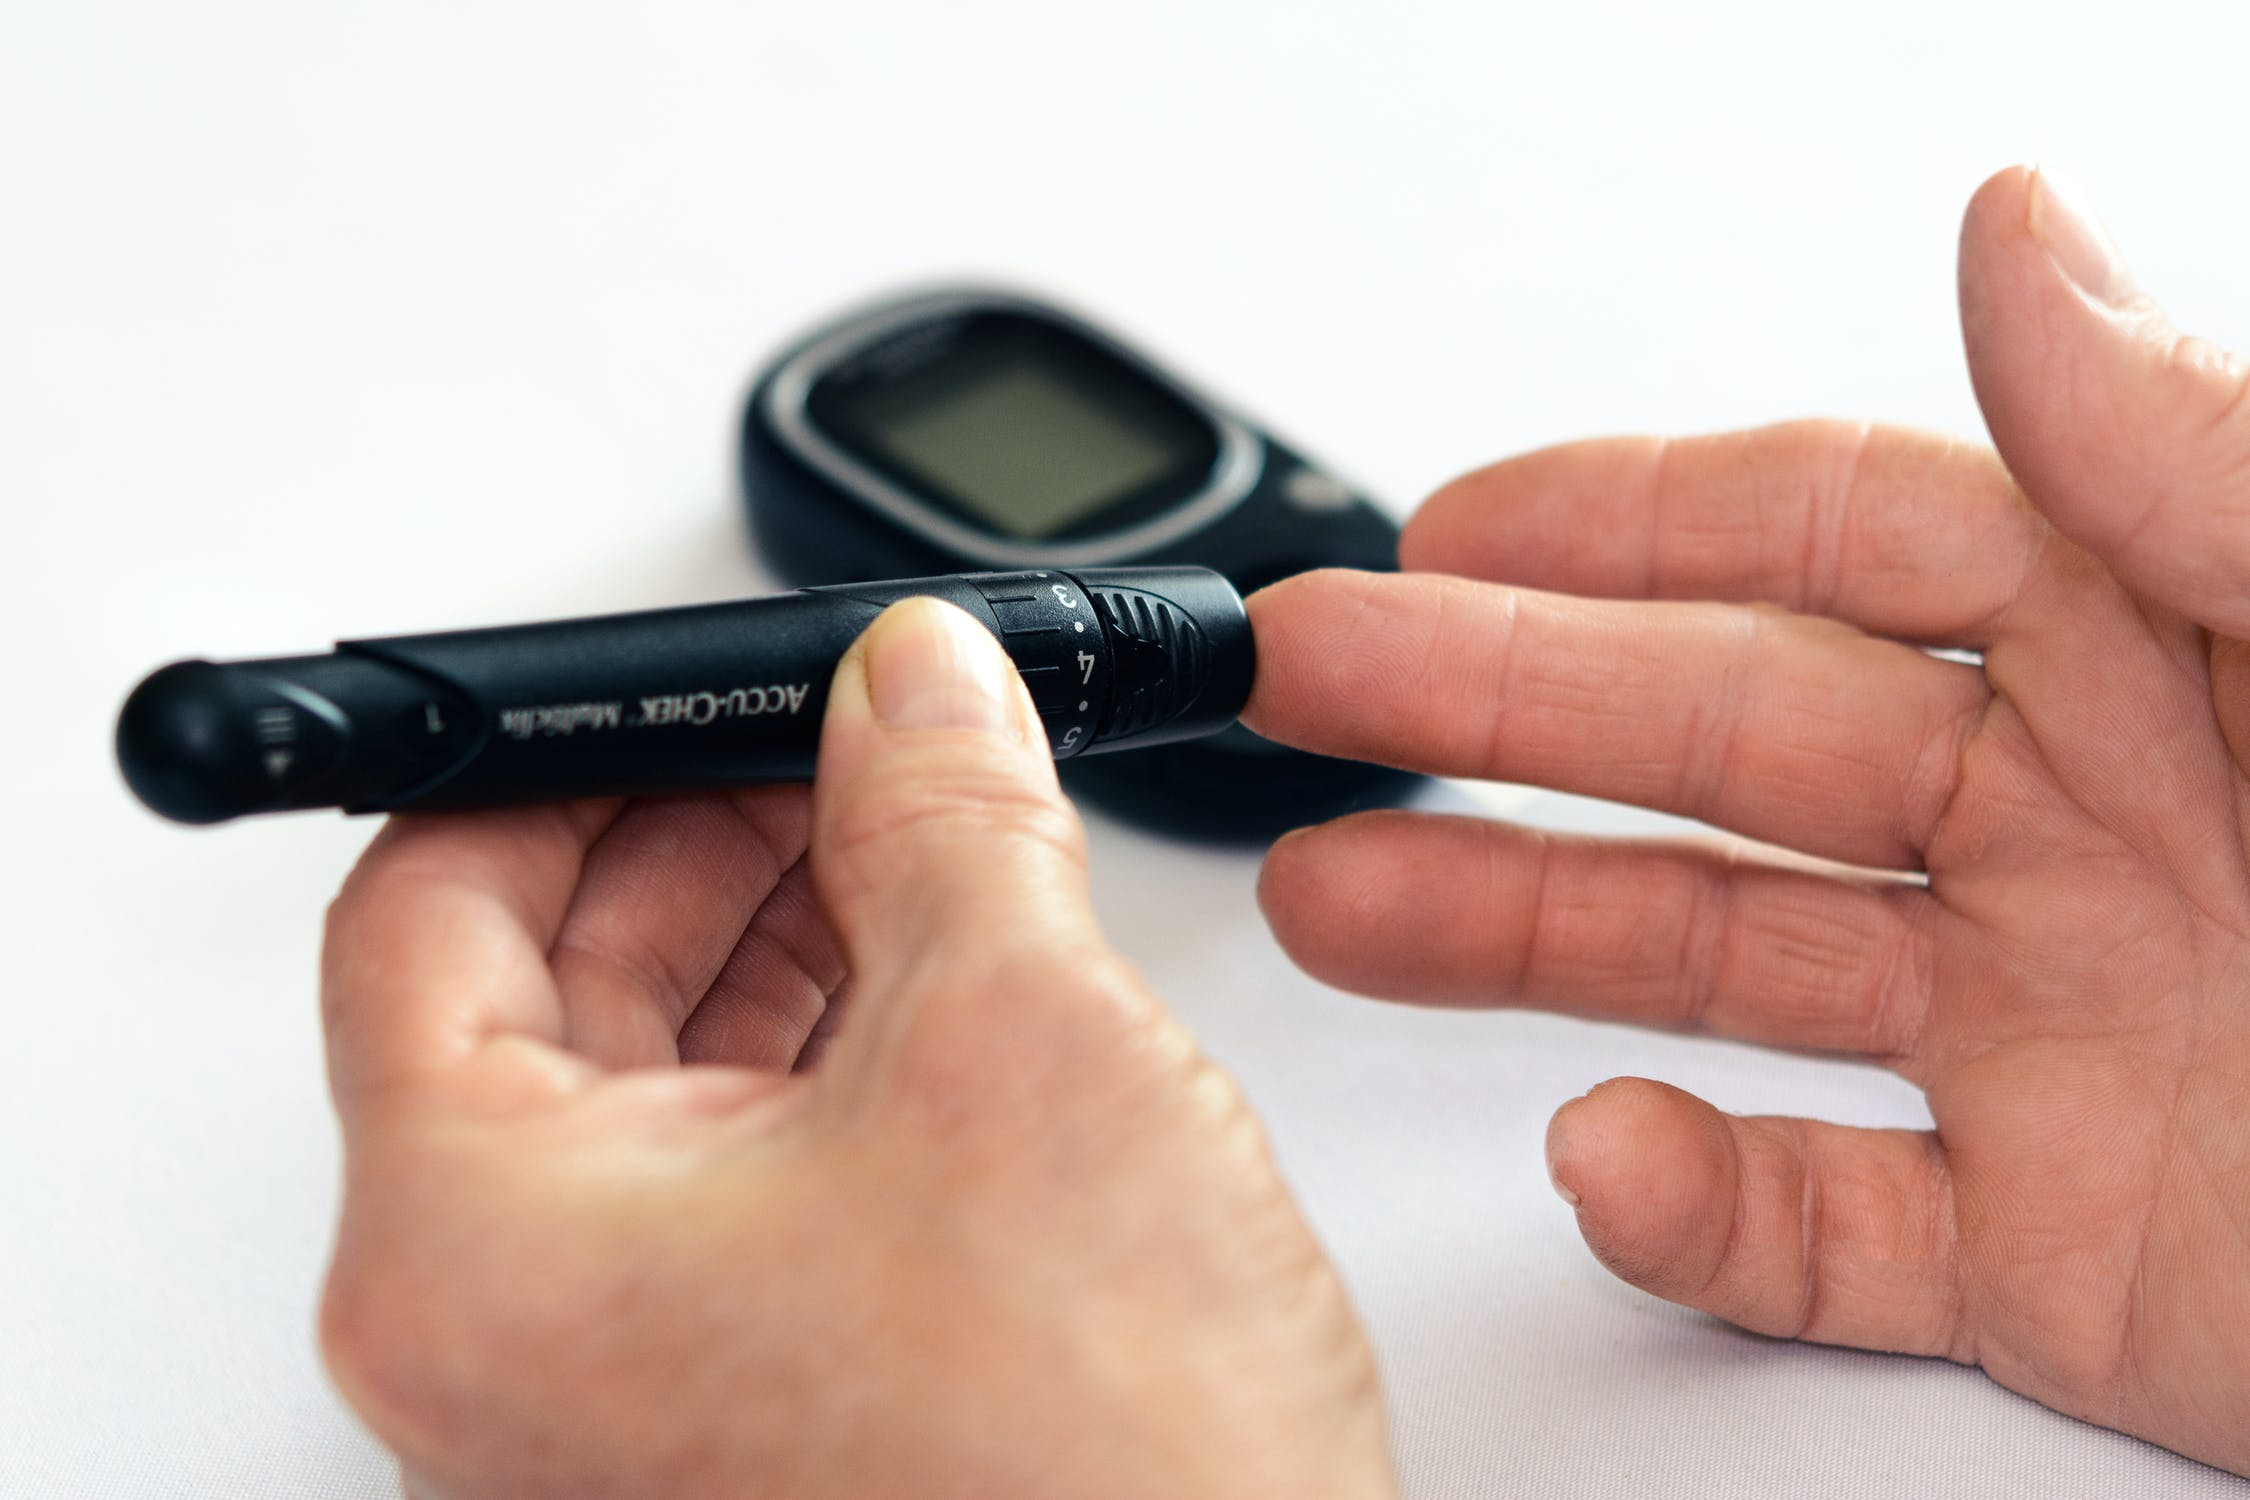 A person's hands checking their blood sugar levels. Photo by pexels user PhotoMIX Company. Photo used courtesy of pexels